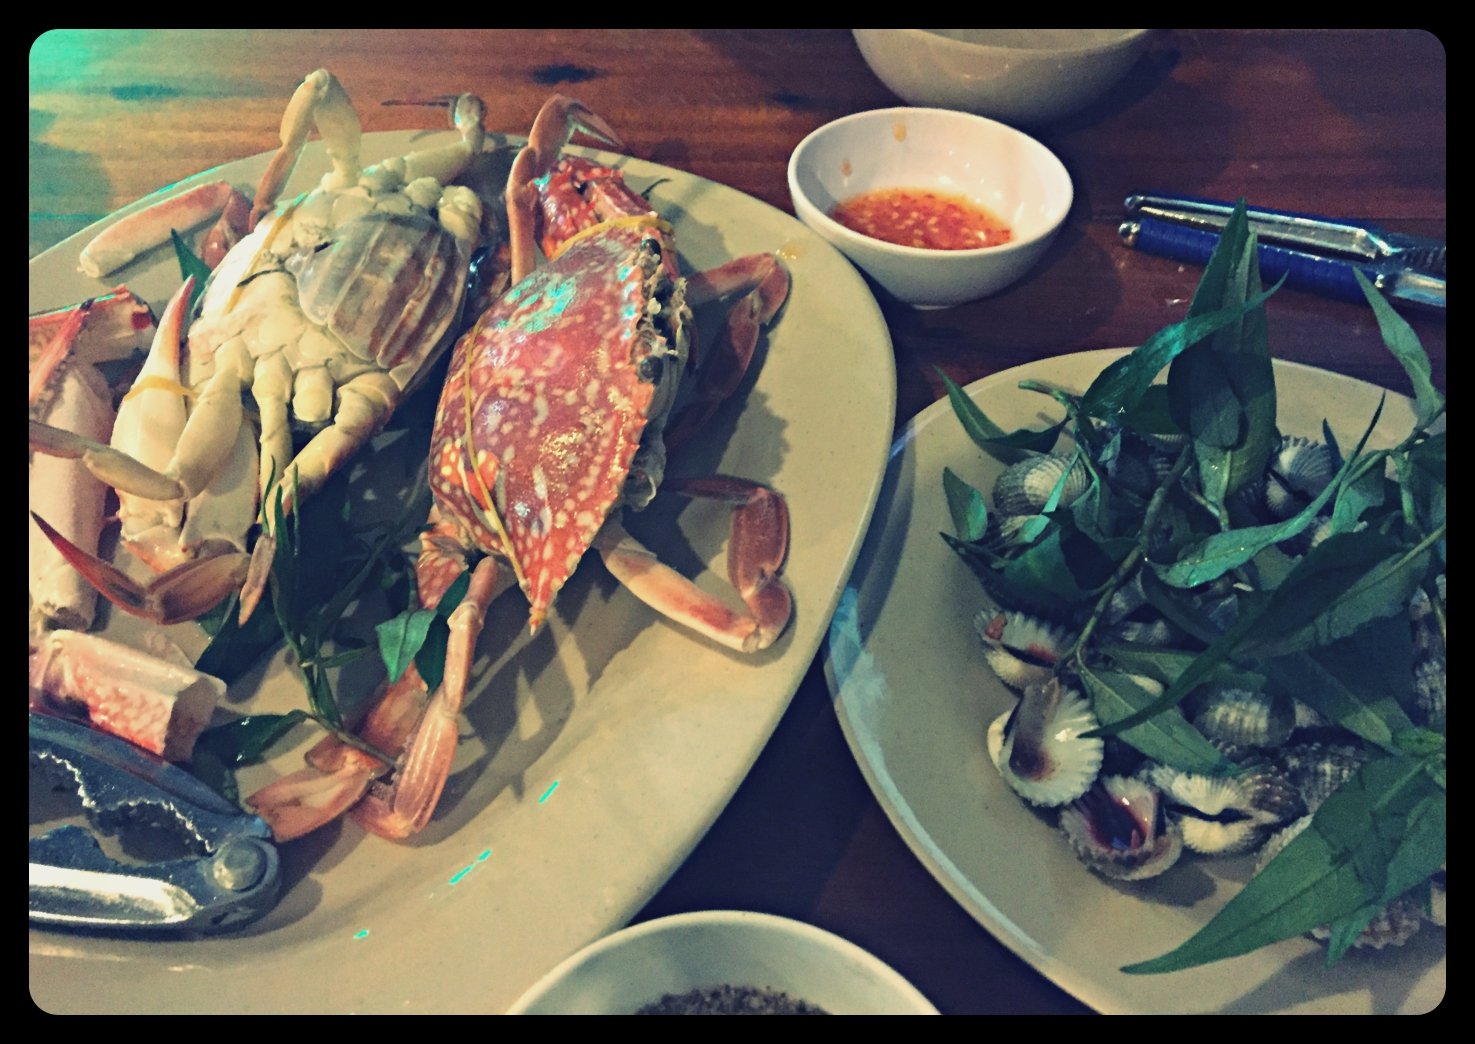 Cooked crabs and bloody mussels